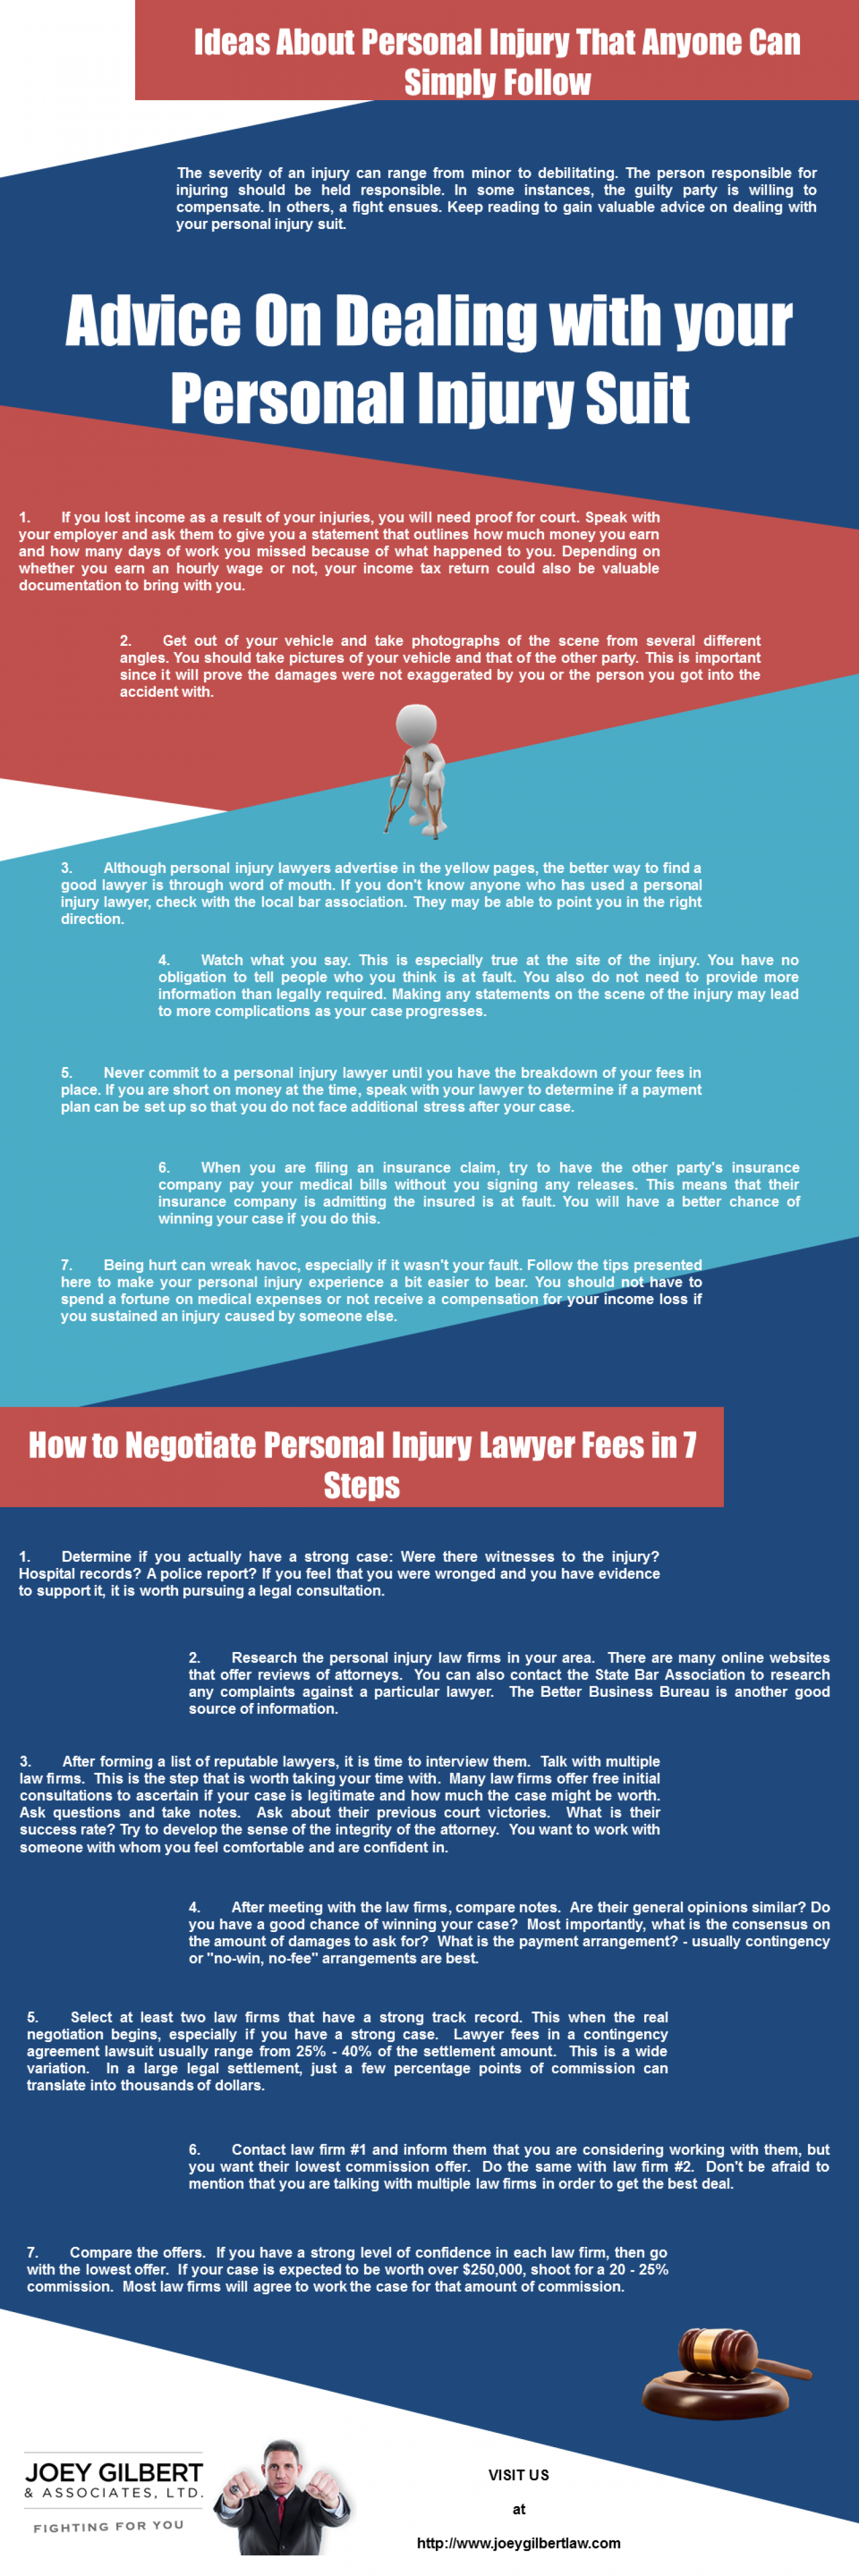 Ideas About Personal Injury That Anyone Can Simply Follow Infographic